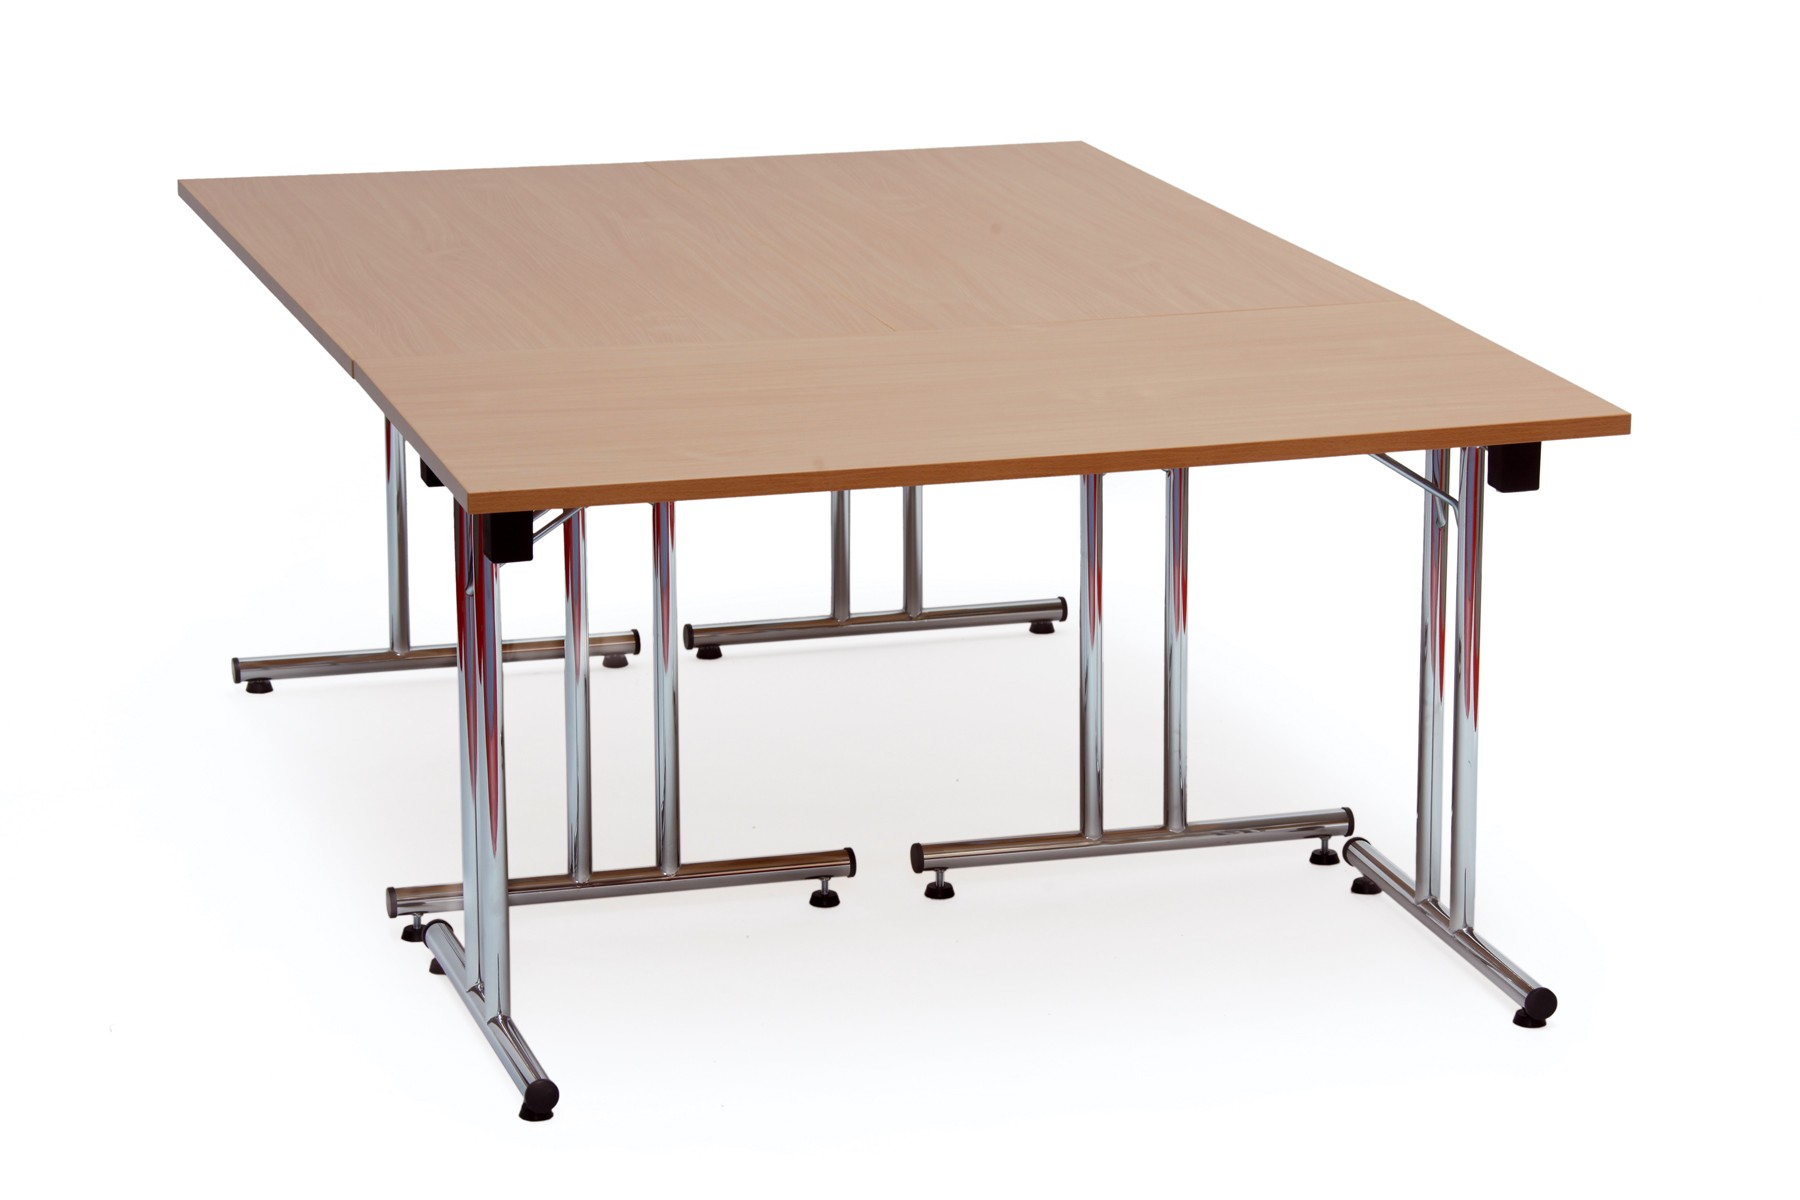 Table pliante empilable komino achat tables pliantes et abattantes 159 00 - Table pliante de collectivite ...